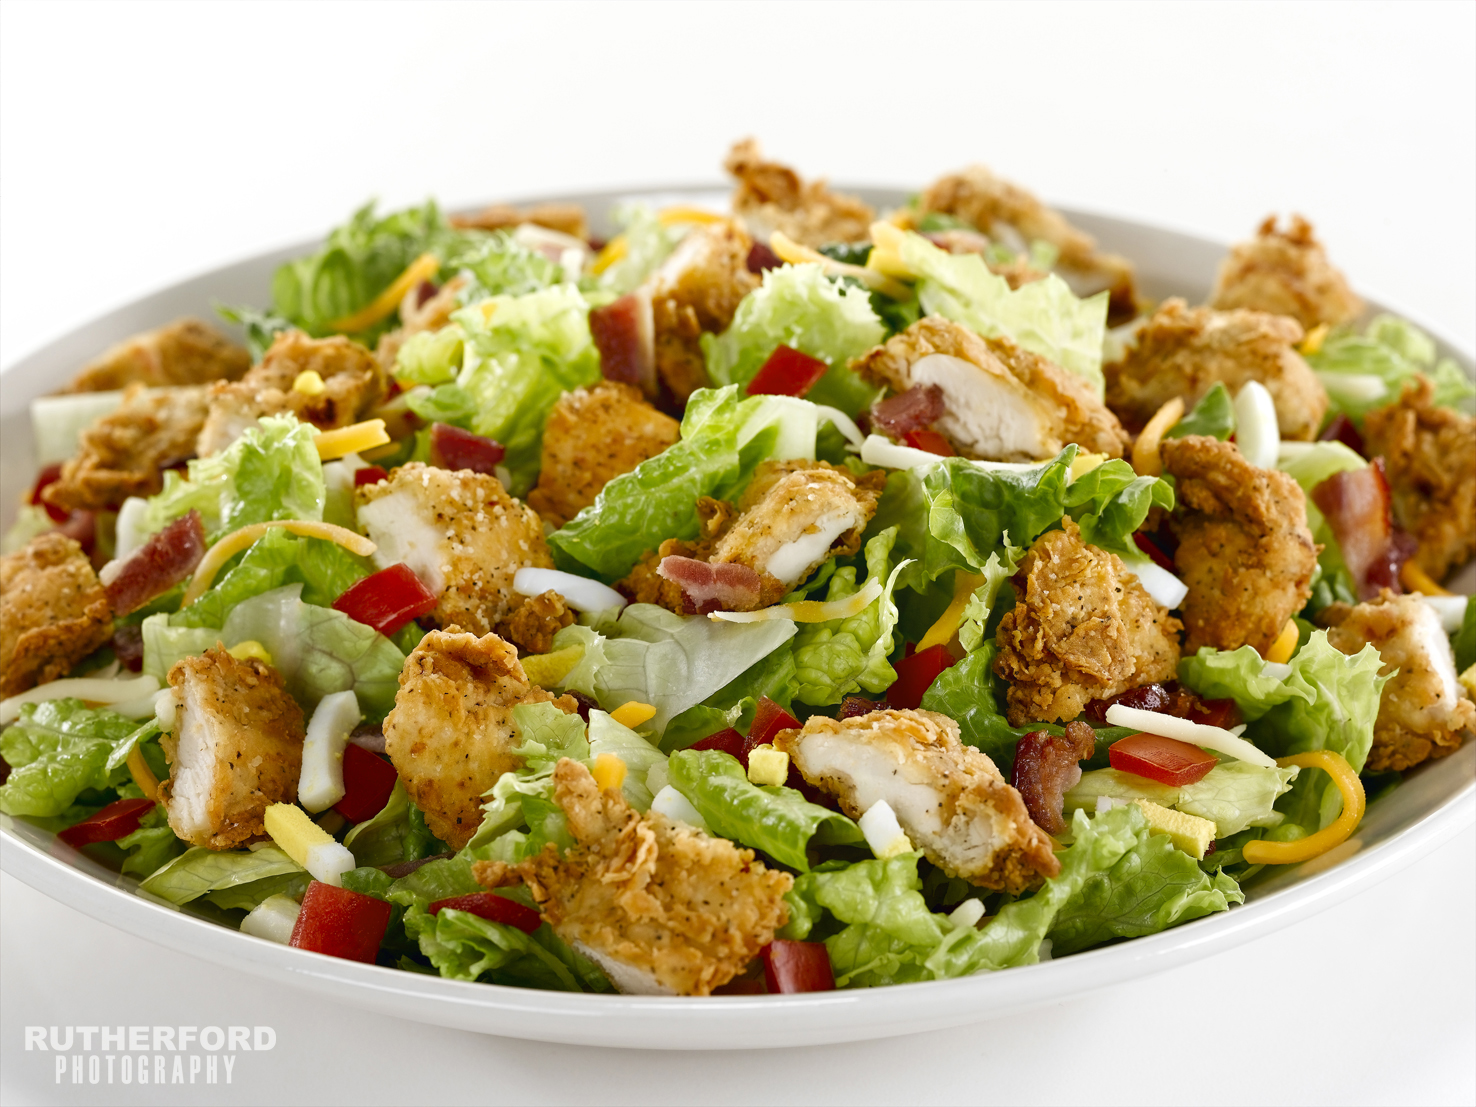 southern-fried-chick-salad